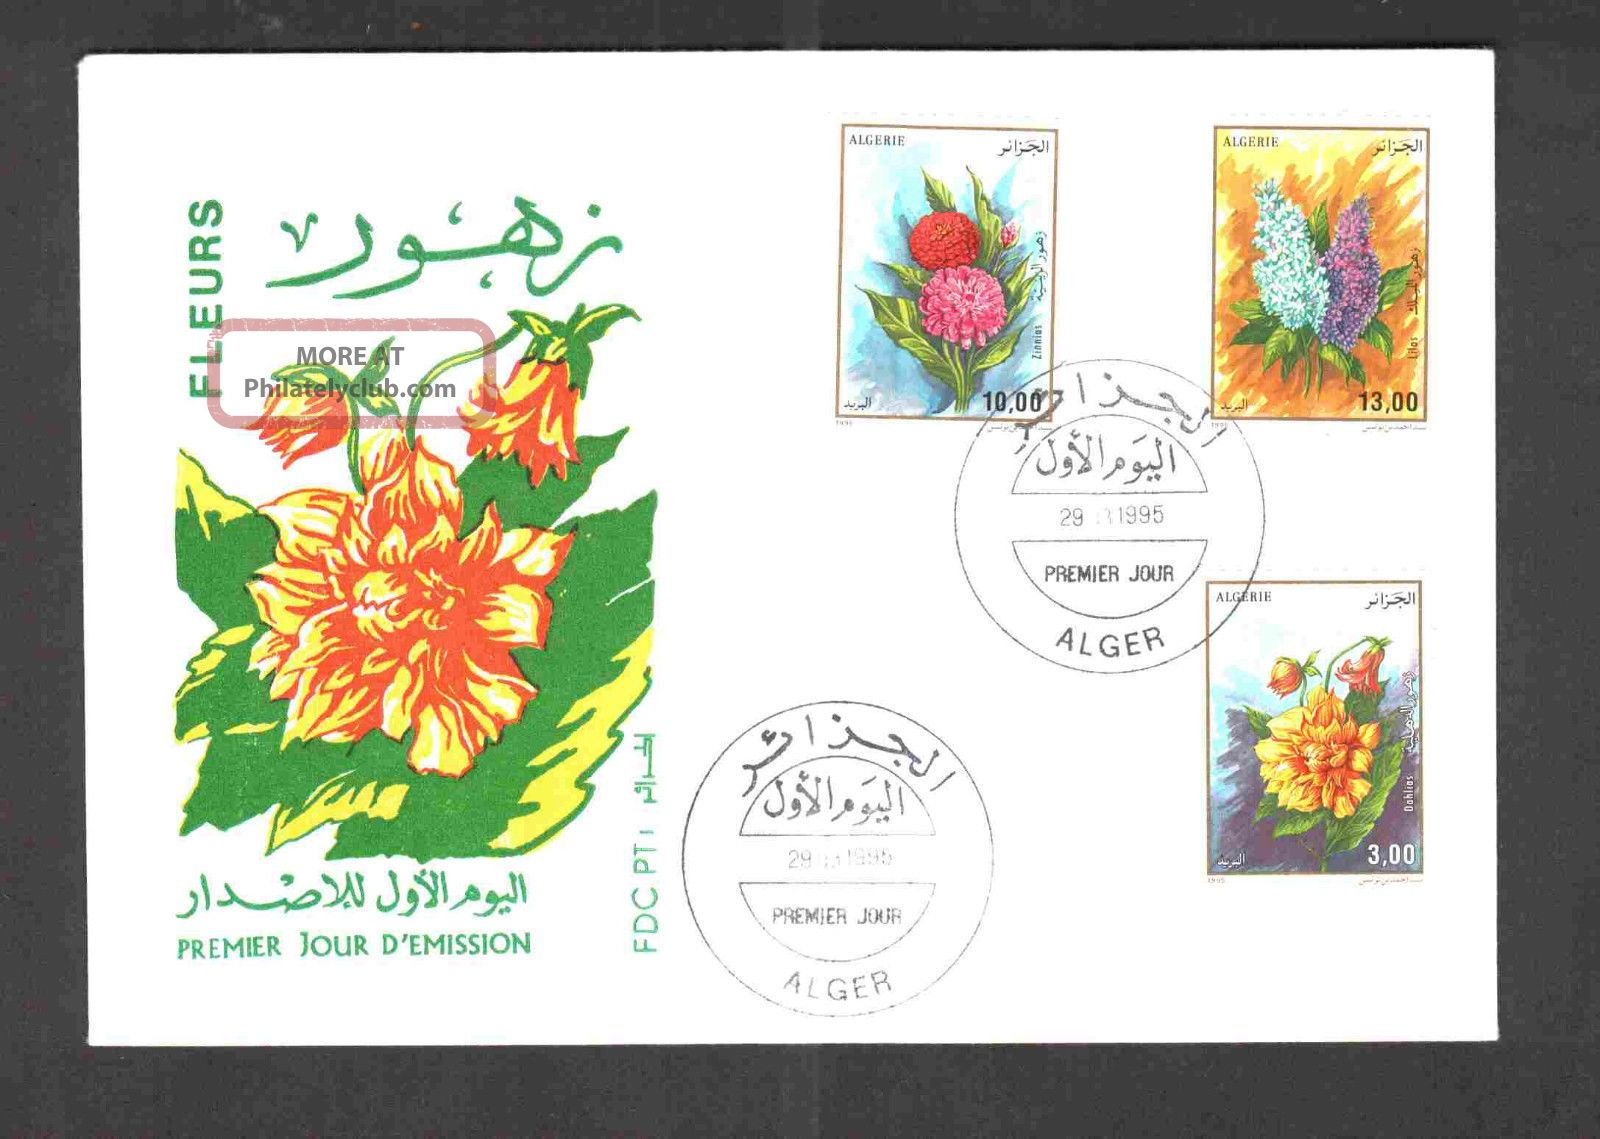 Algeria 1995 - Flowers (3v) Scott 1035/37 - Fdc - Topical Stamps photo